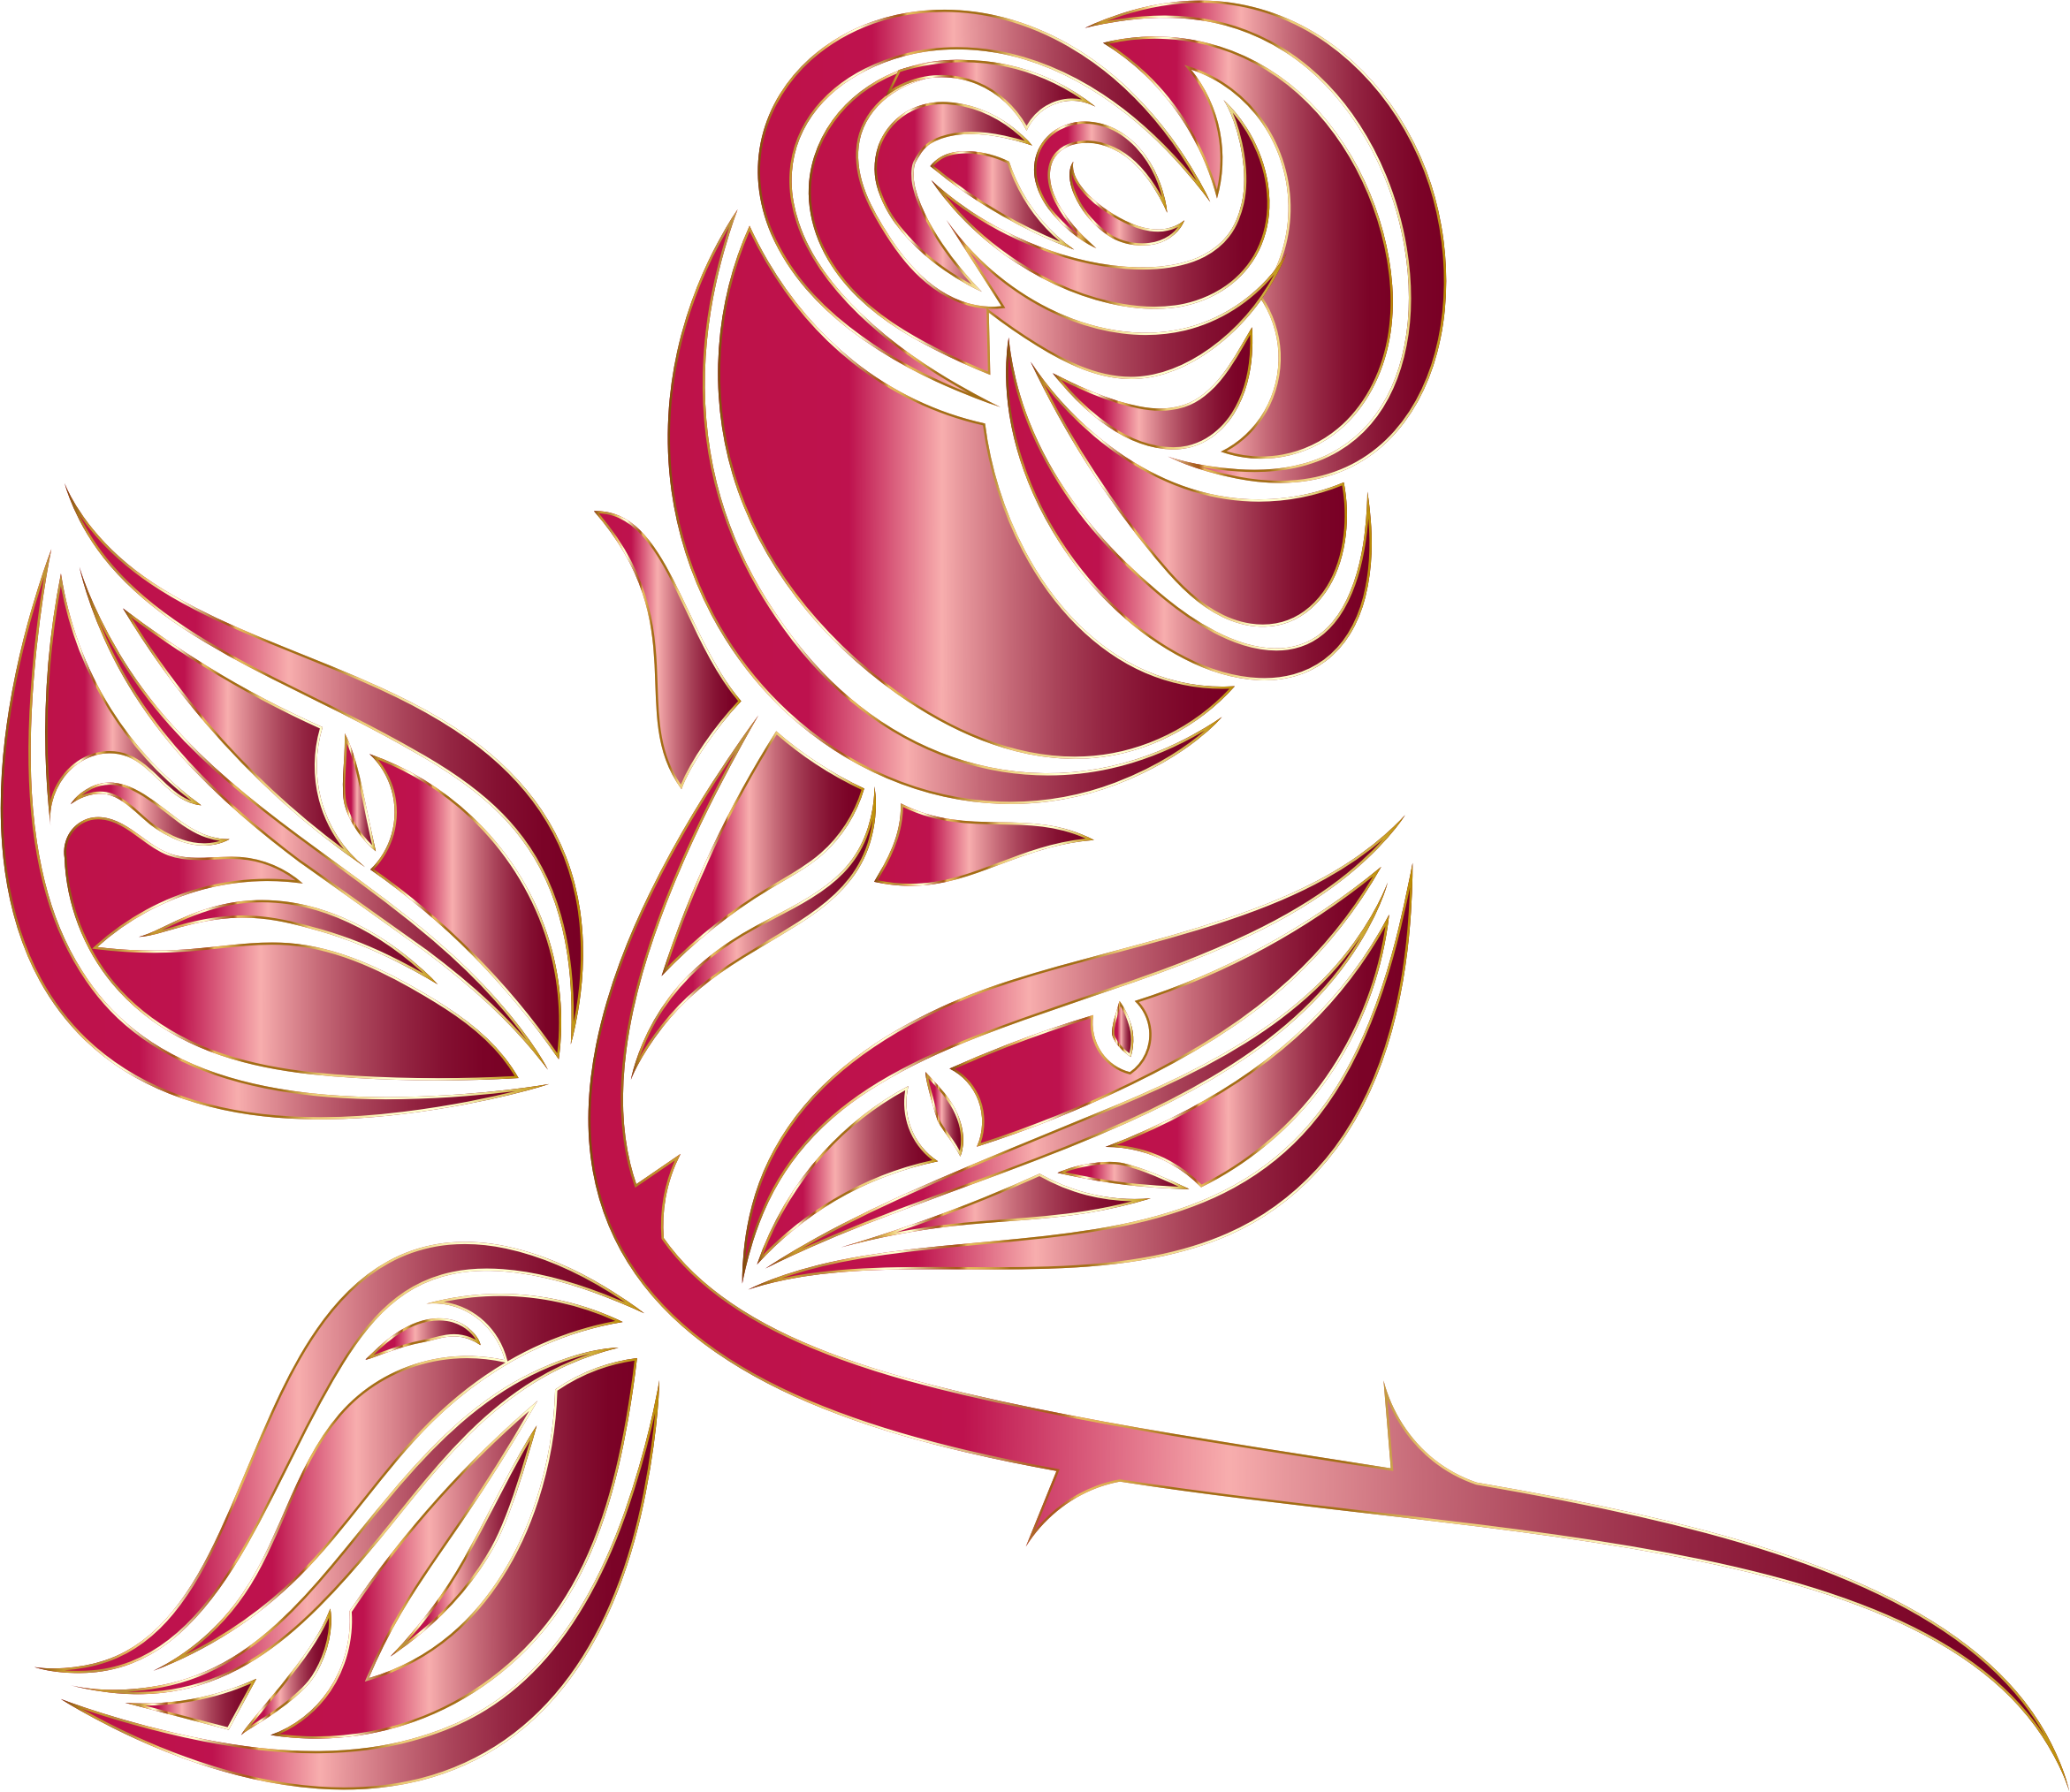 Thorns spines and prickles. Clipart rose thorn